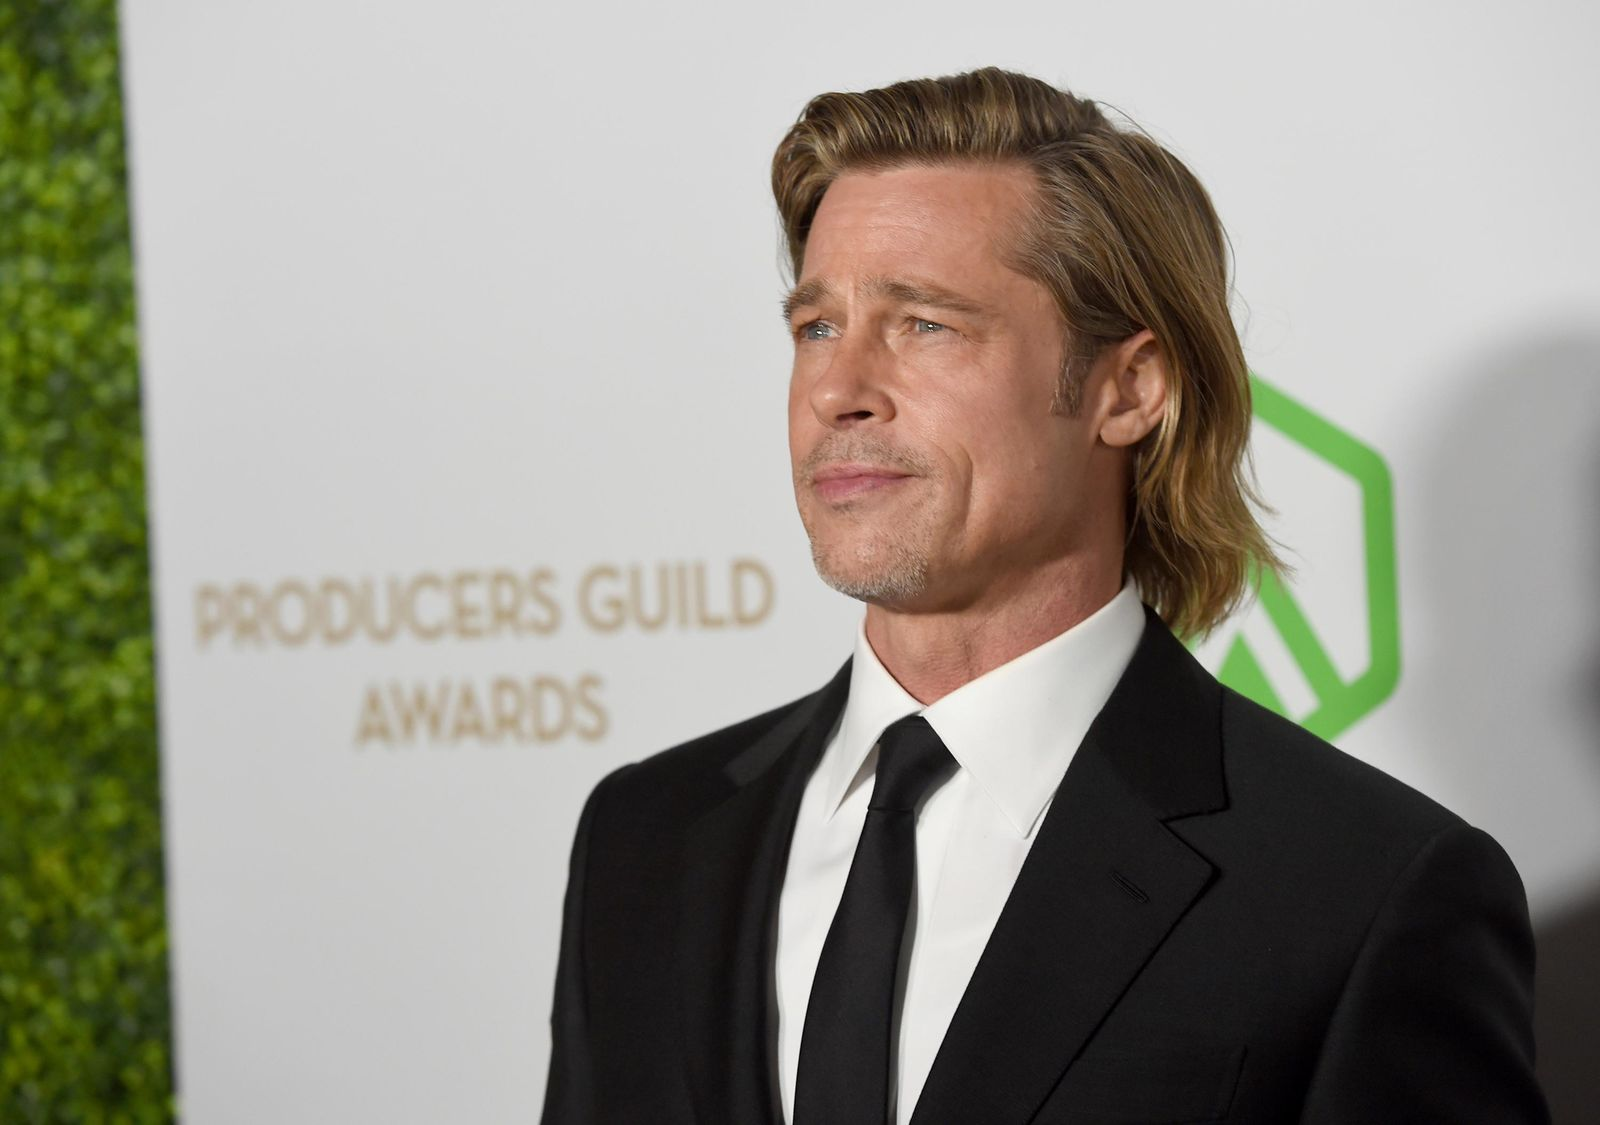 Brad Pitt arrives at the 2020 Producers Guild Awards at the Hollywood Palladium on Saturday, Jan. 18, 2020, in Los Angeles, Calif. (AP Photo/Chris Pizzello)